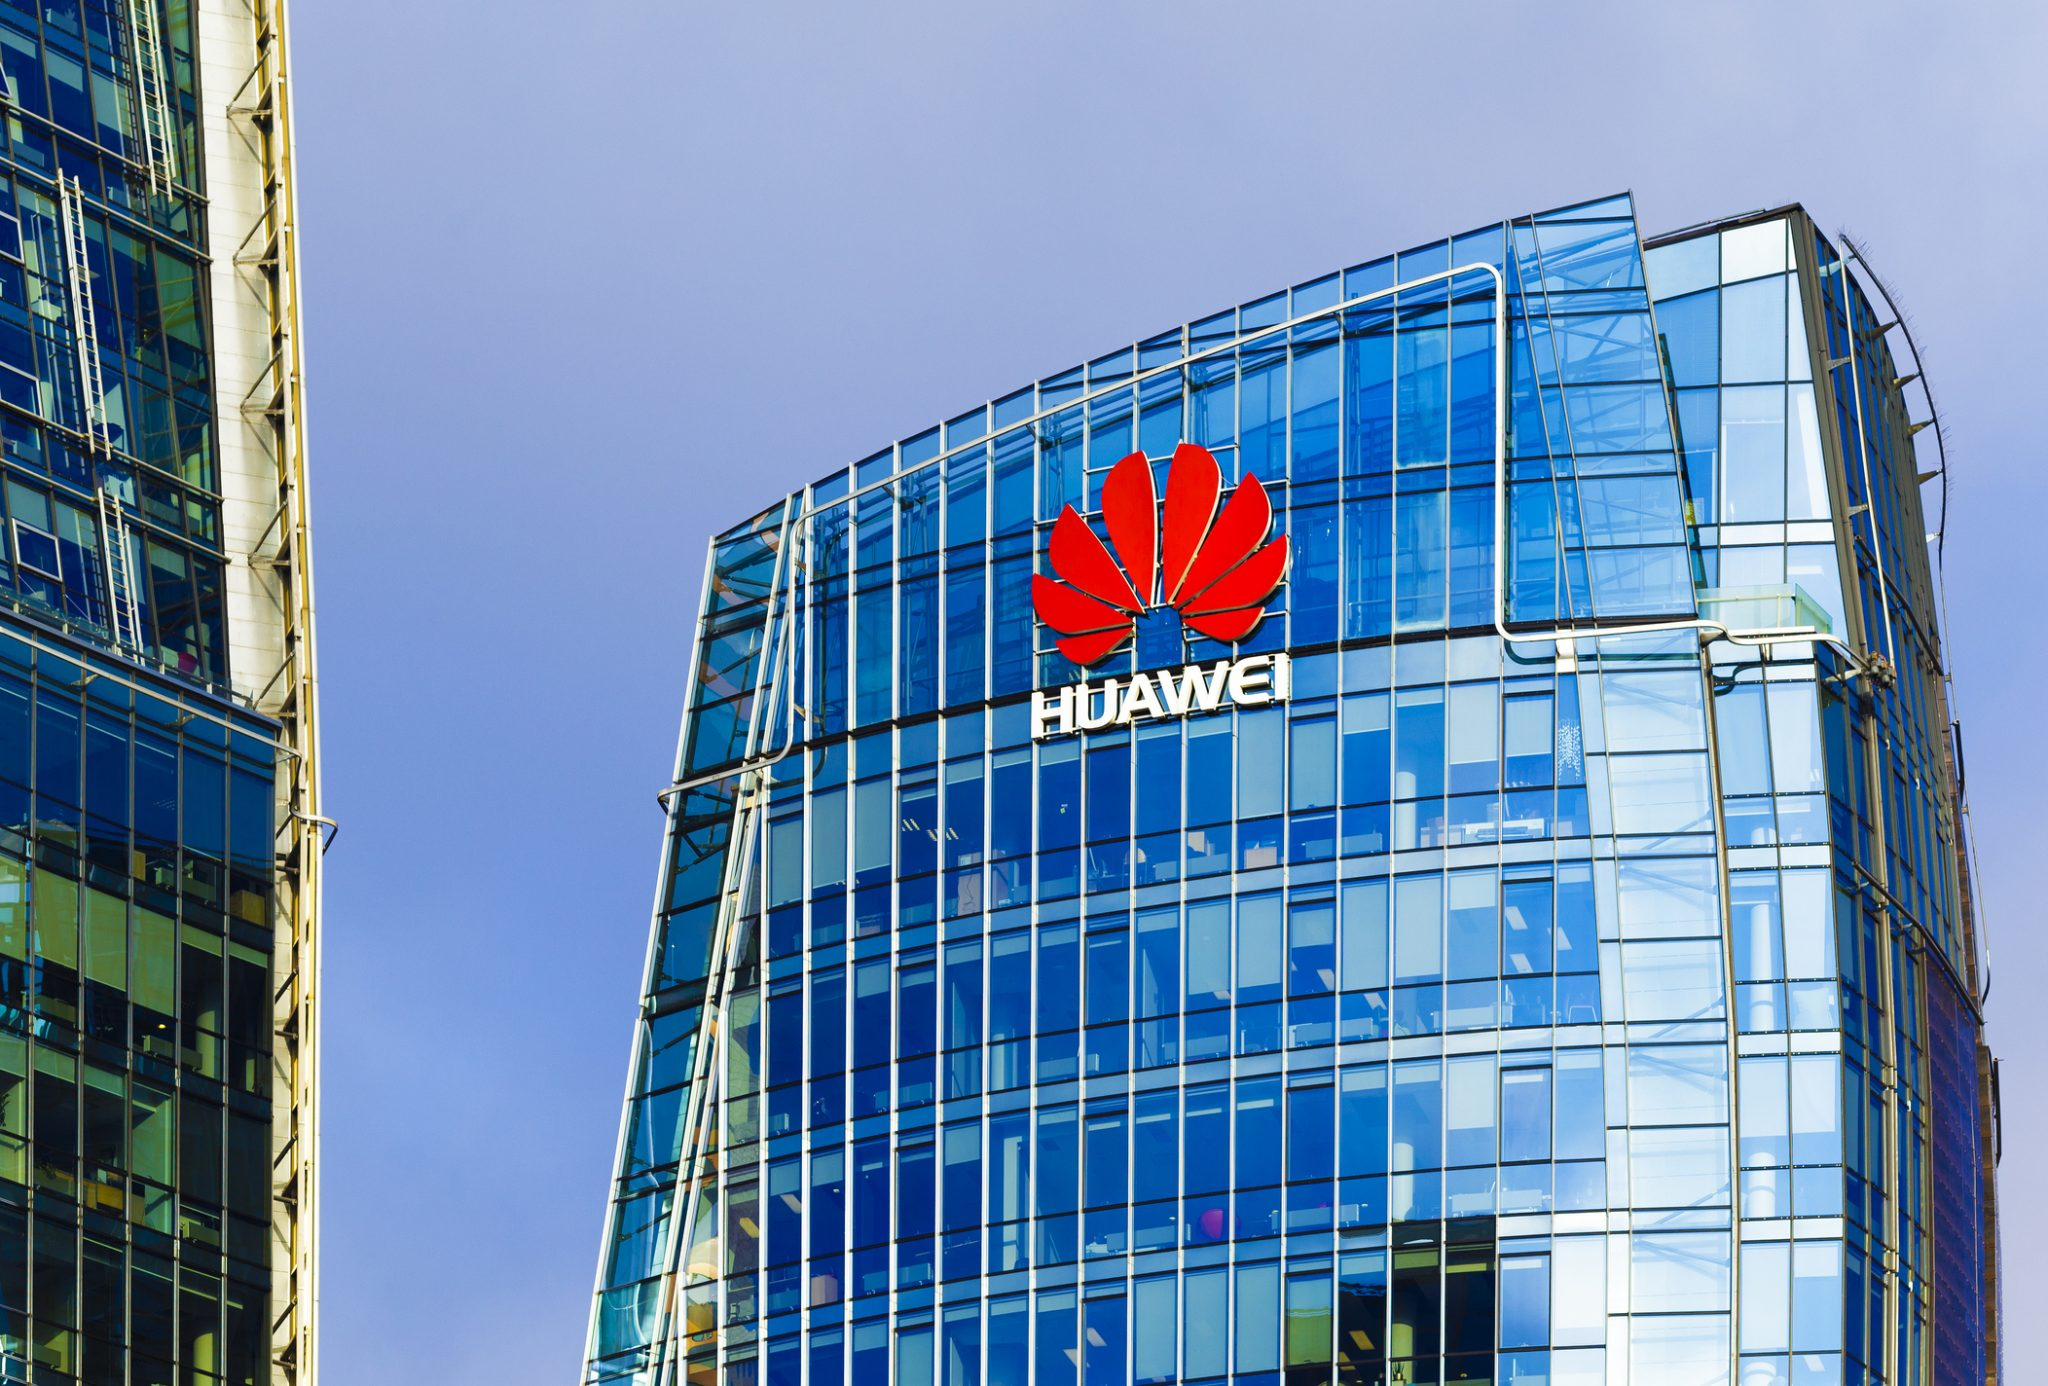 Huawei working hard to launch new OS